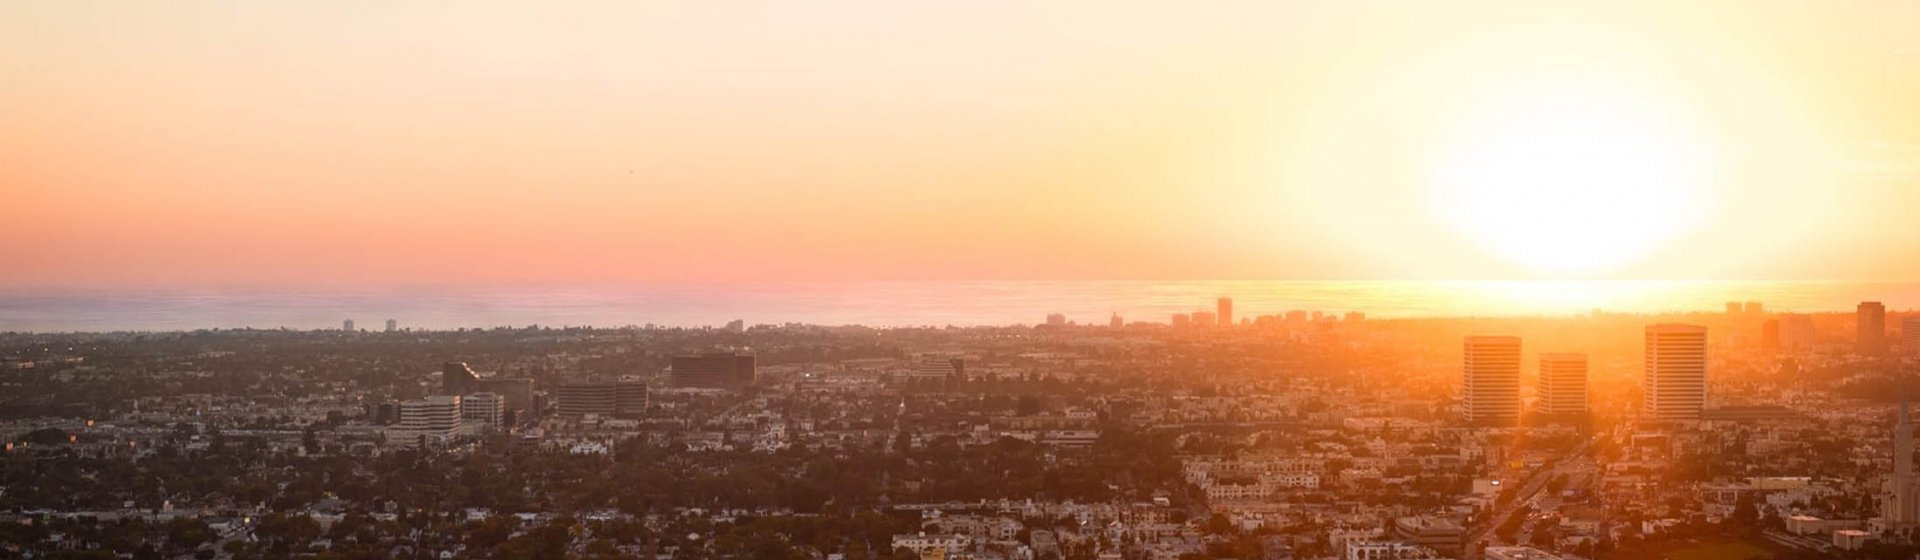 A view of the LA skyline at sunset.